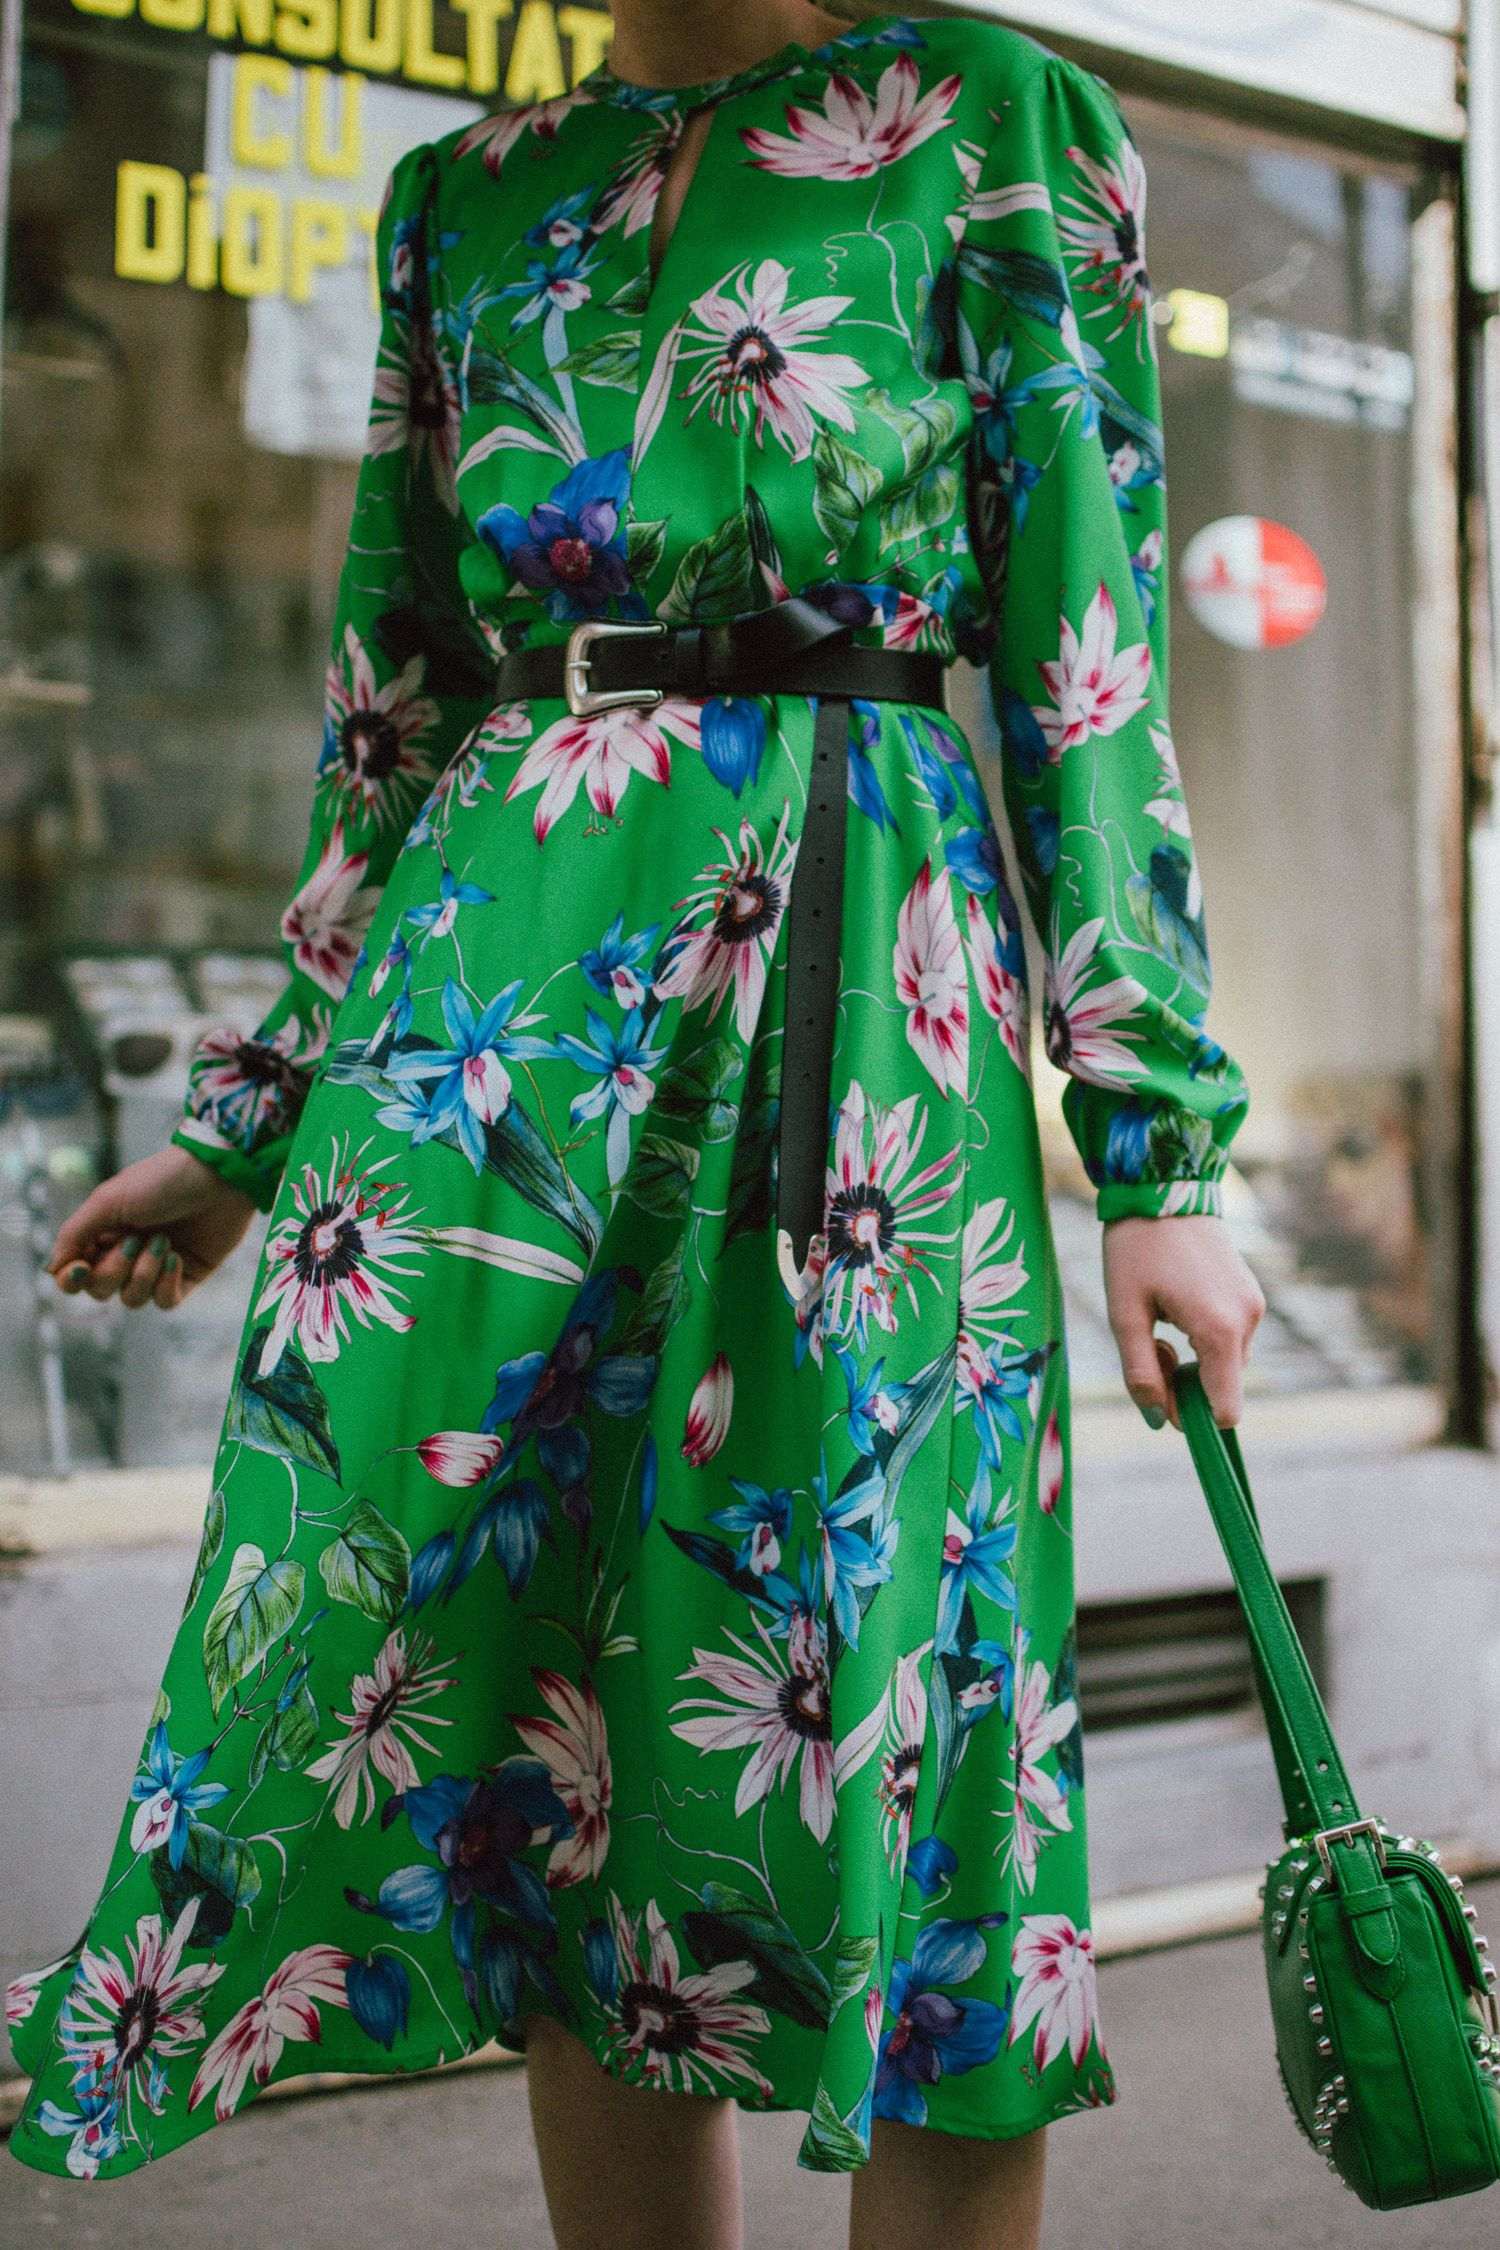 37adc5b96fe2 Green midi floral dress, gucci ace heart embroidered sneakers, prada green  leather shoulder bag, mango big straw hat, andreea birsan, couturezilla, ...